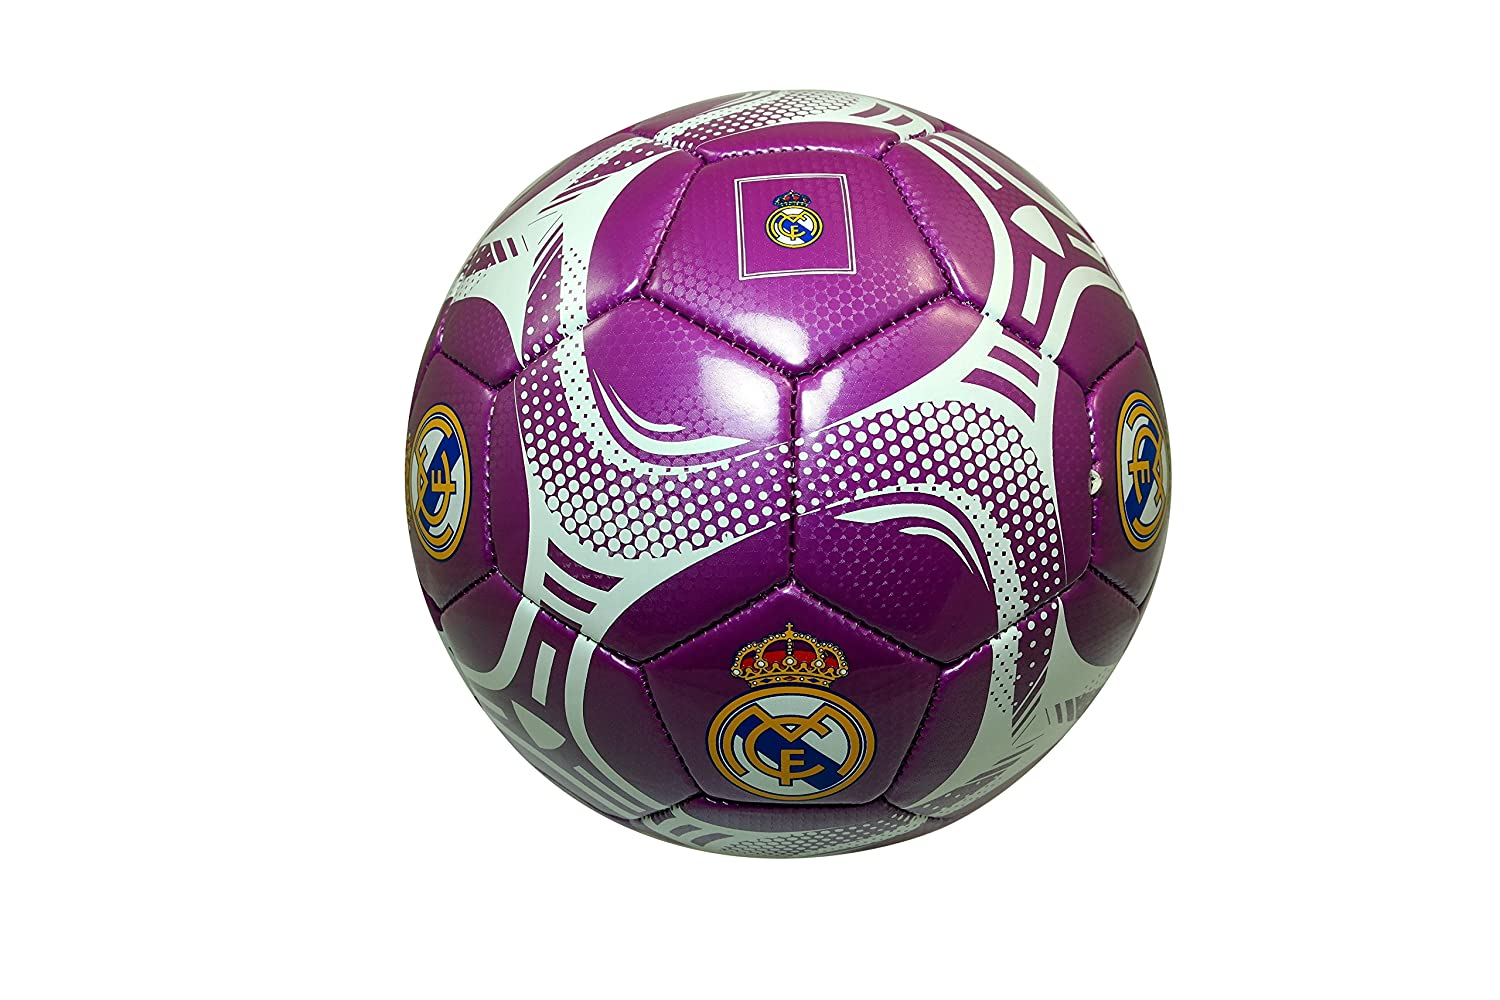 Real Madrid Authentic Official Licensedサッカーボールサイズ5 B01C7ZV356 5|レアルマドリード ボール5-006 5